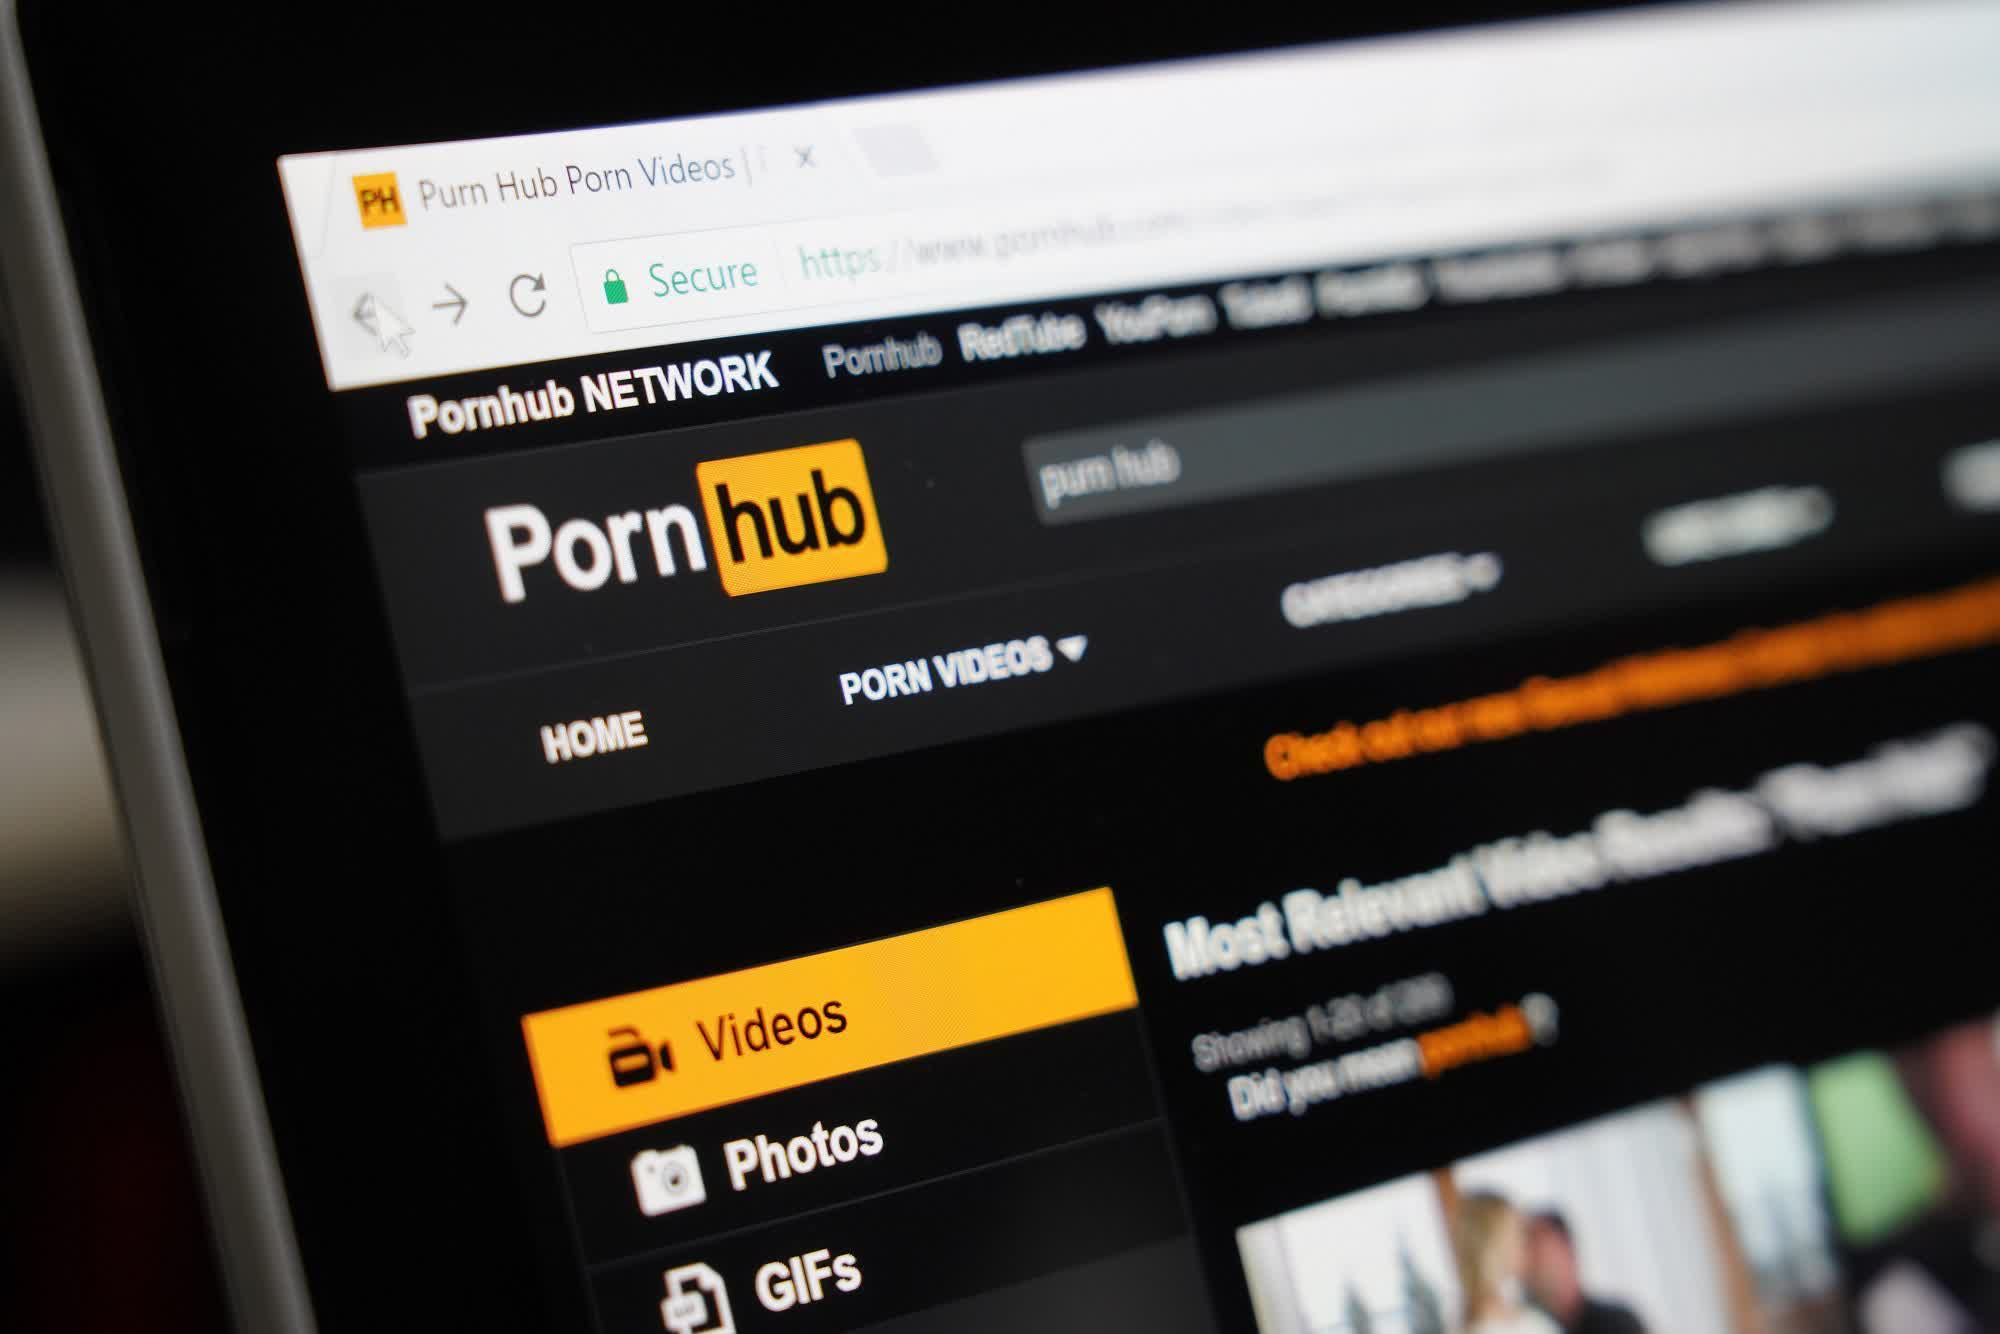 Mastercard and Visa cut ties with Pornhub following New York Times expose